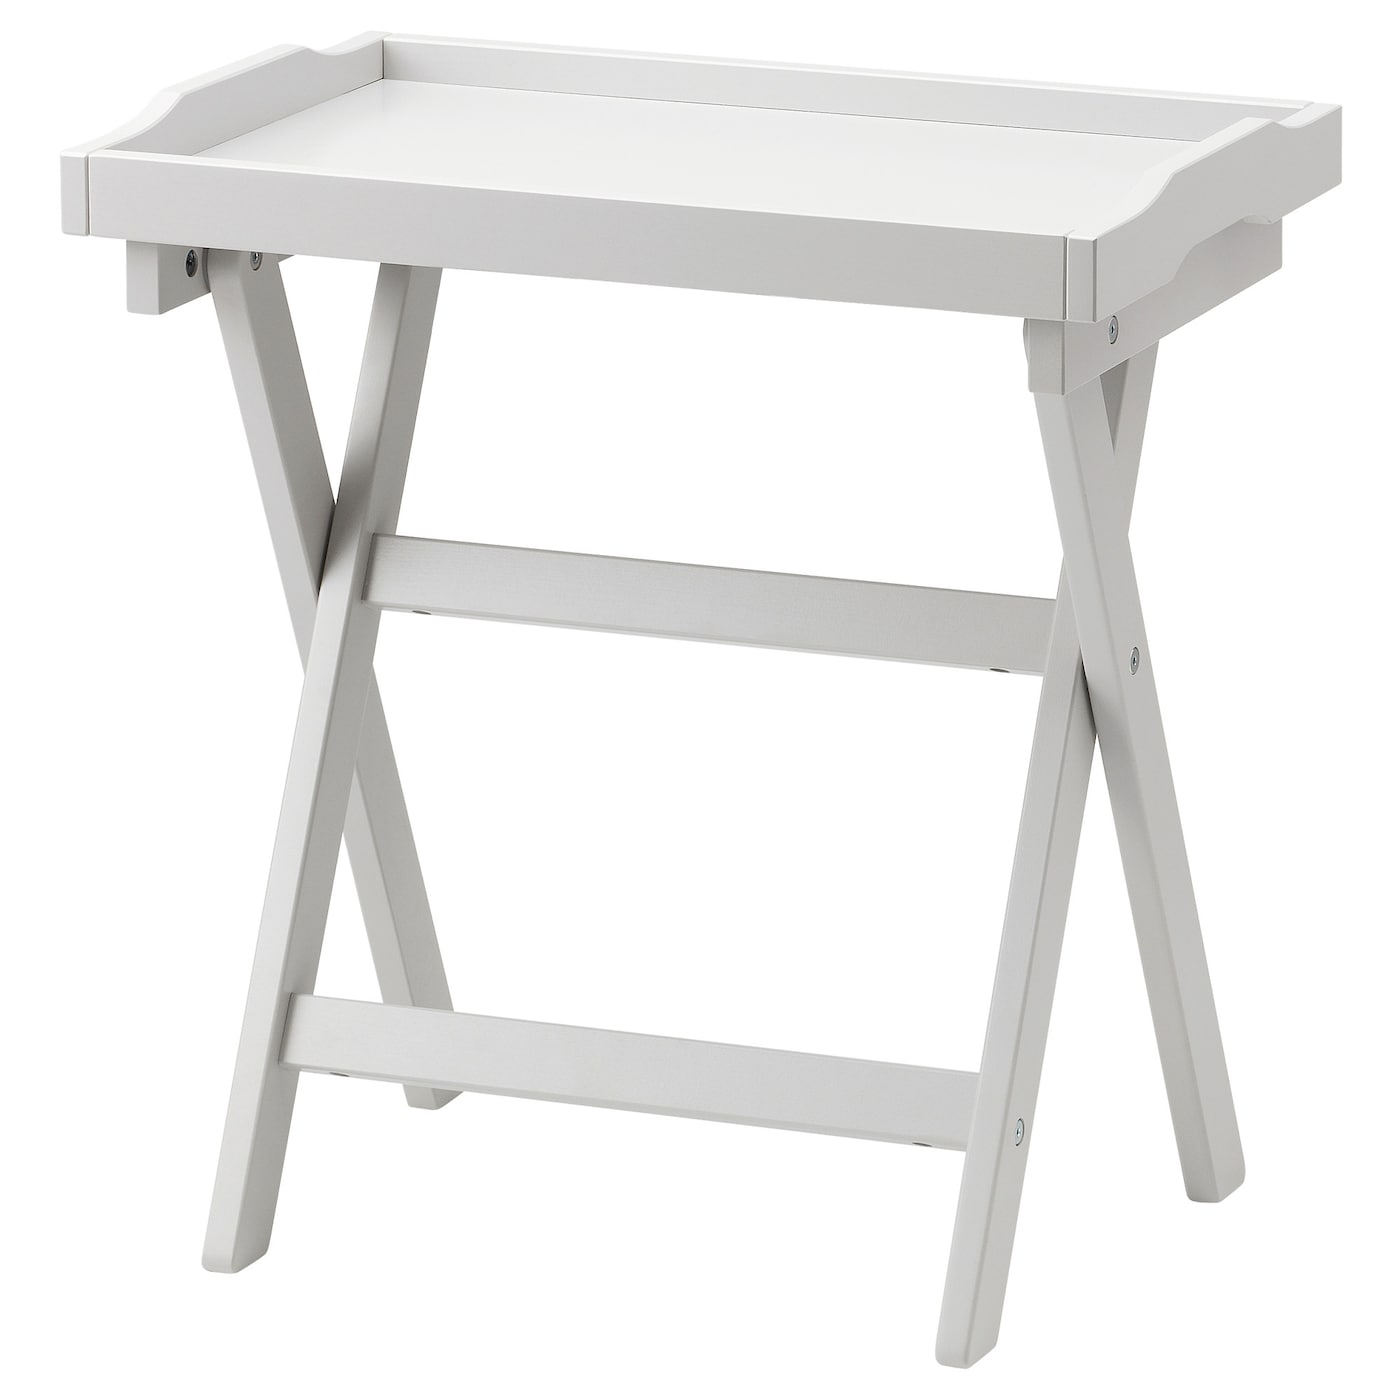 Picture of: Maryd Tray Table Grey 58x38x58 Cm Ikea Ireland